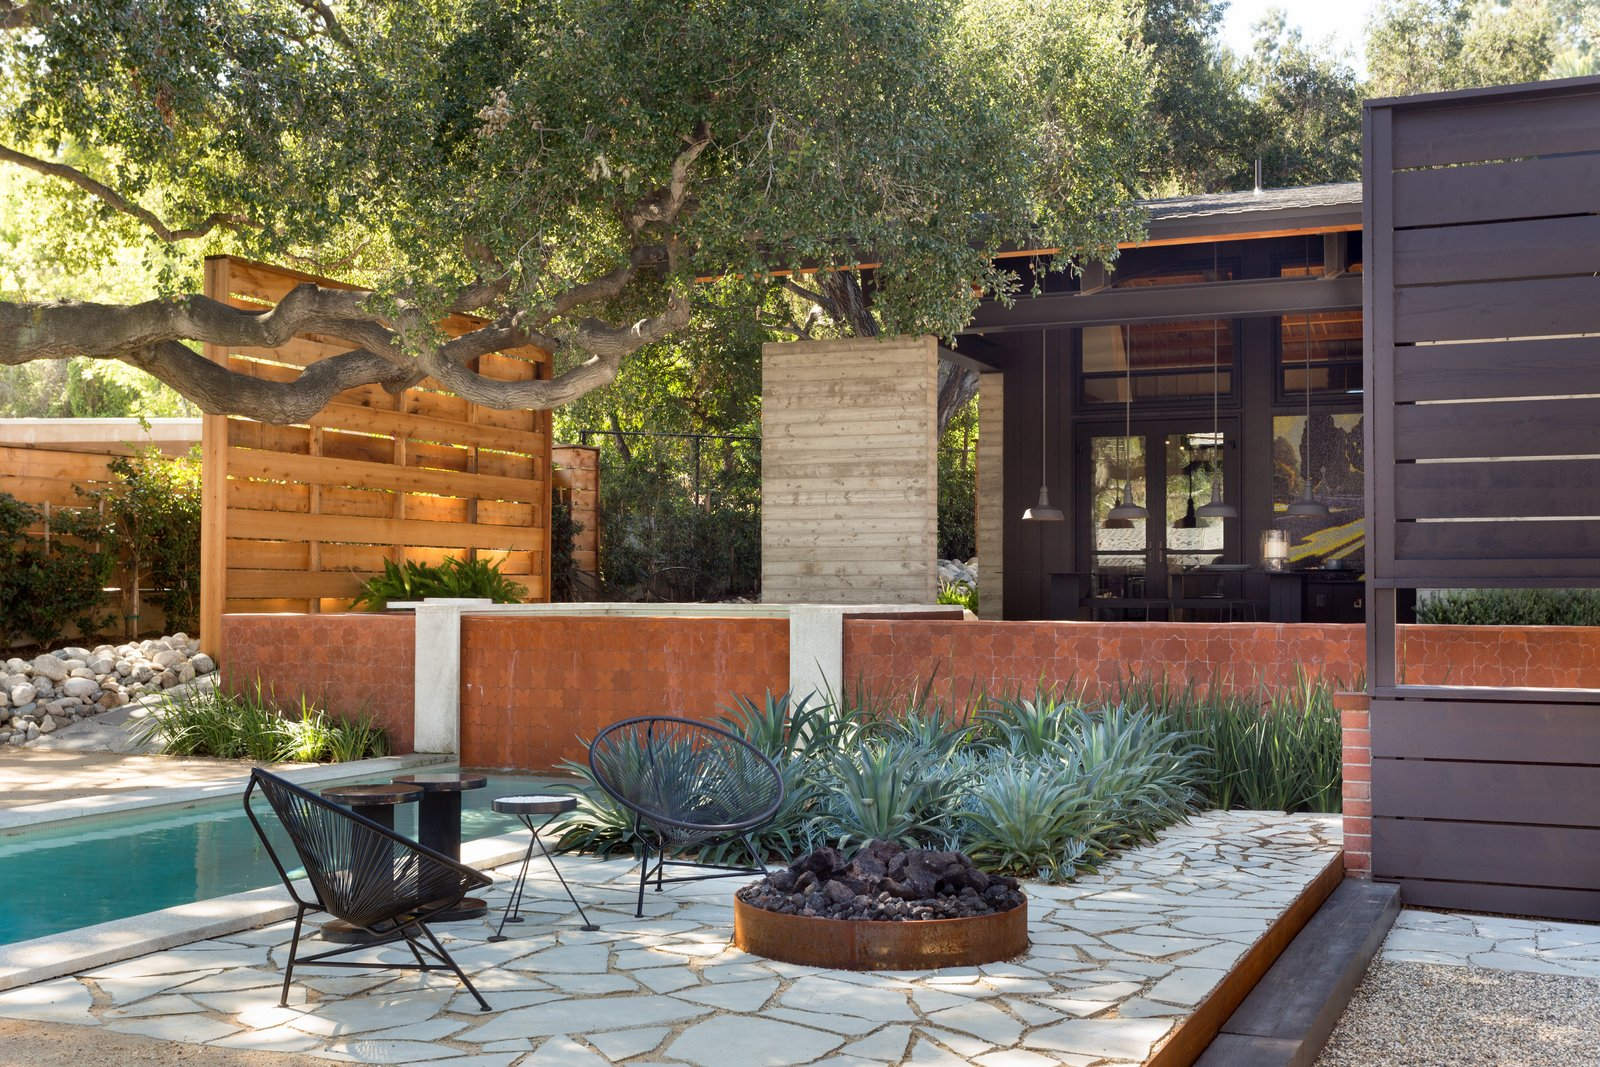 6 Backyard Landscape Designs That Need Minimal Maintenance ... on Modern Landscaping Ideas For Small Backyards  id=51816